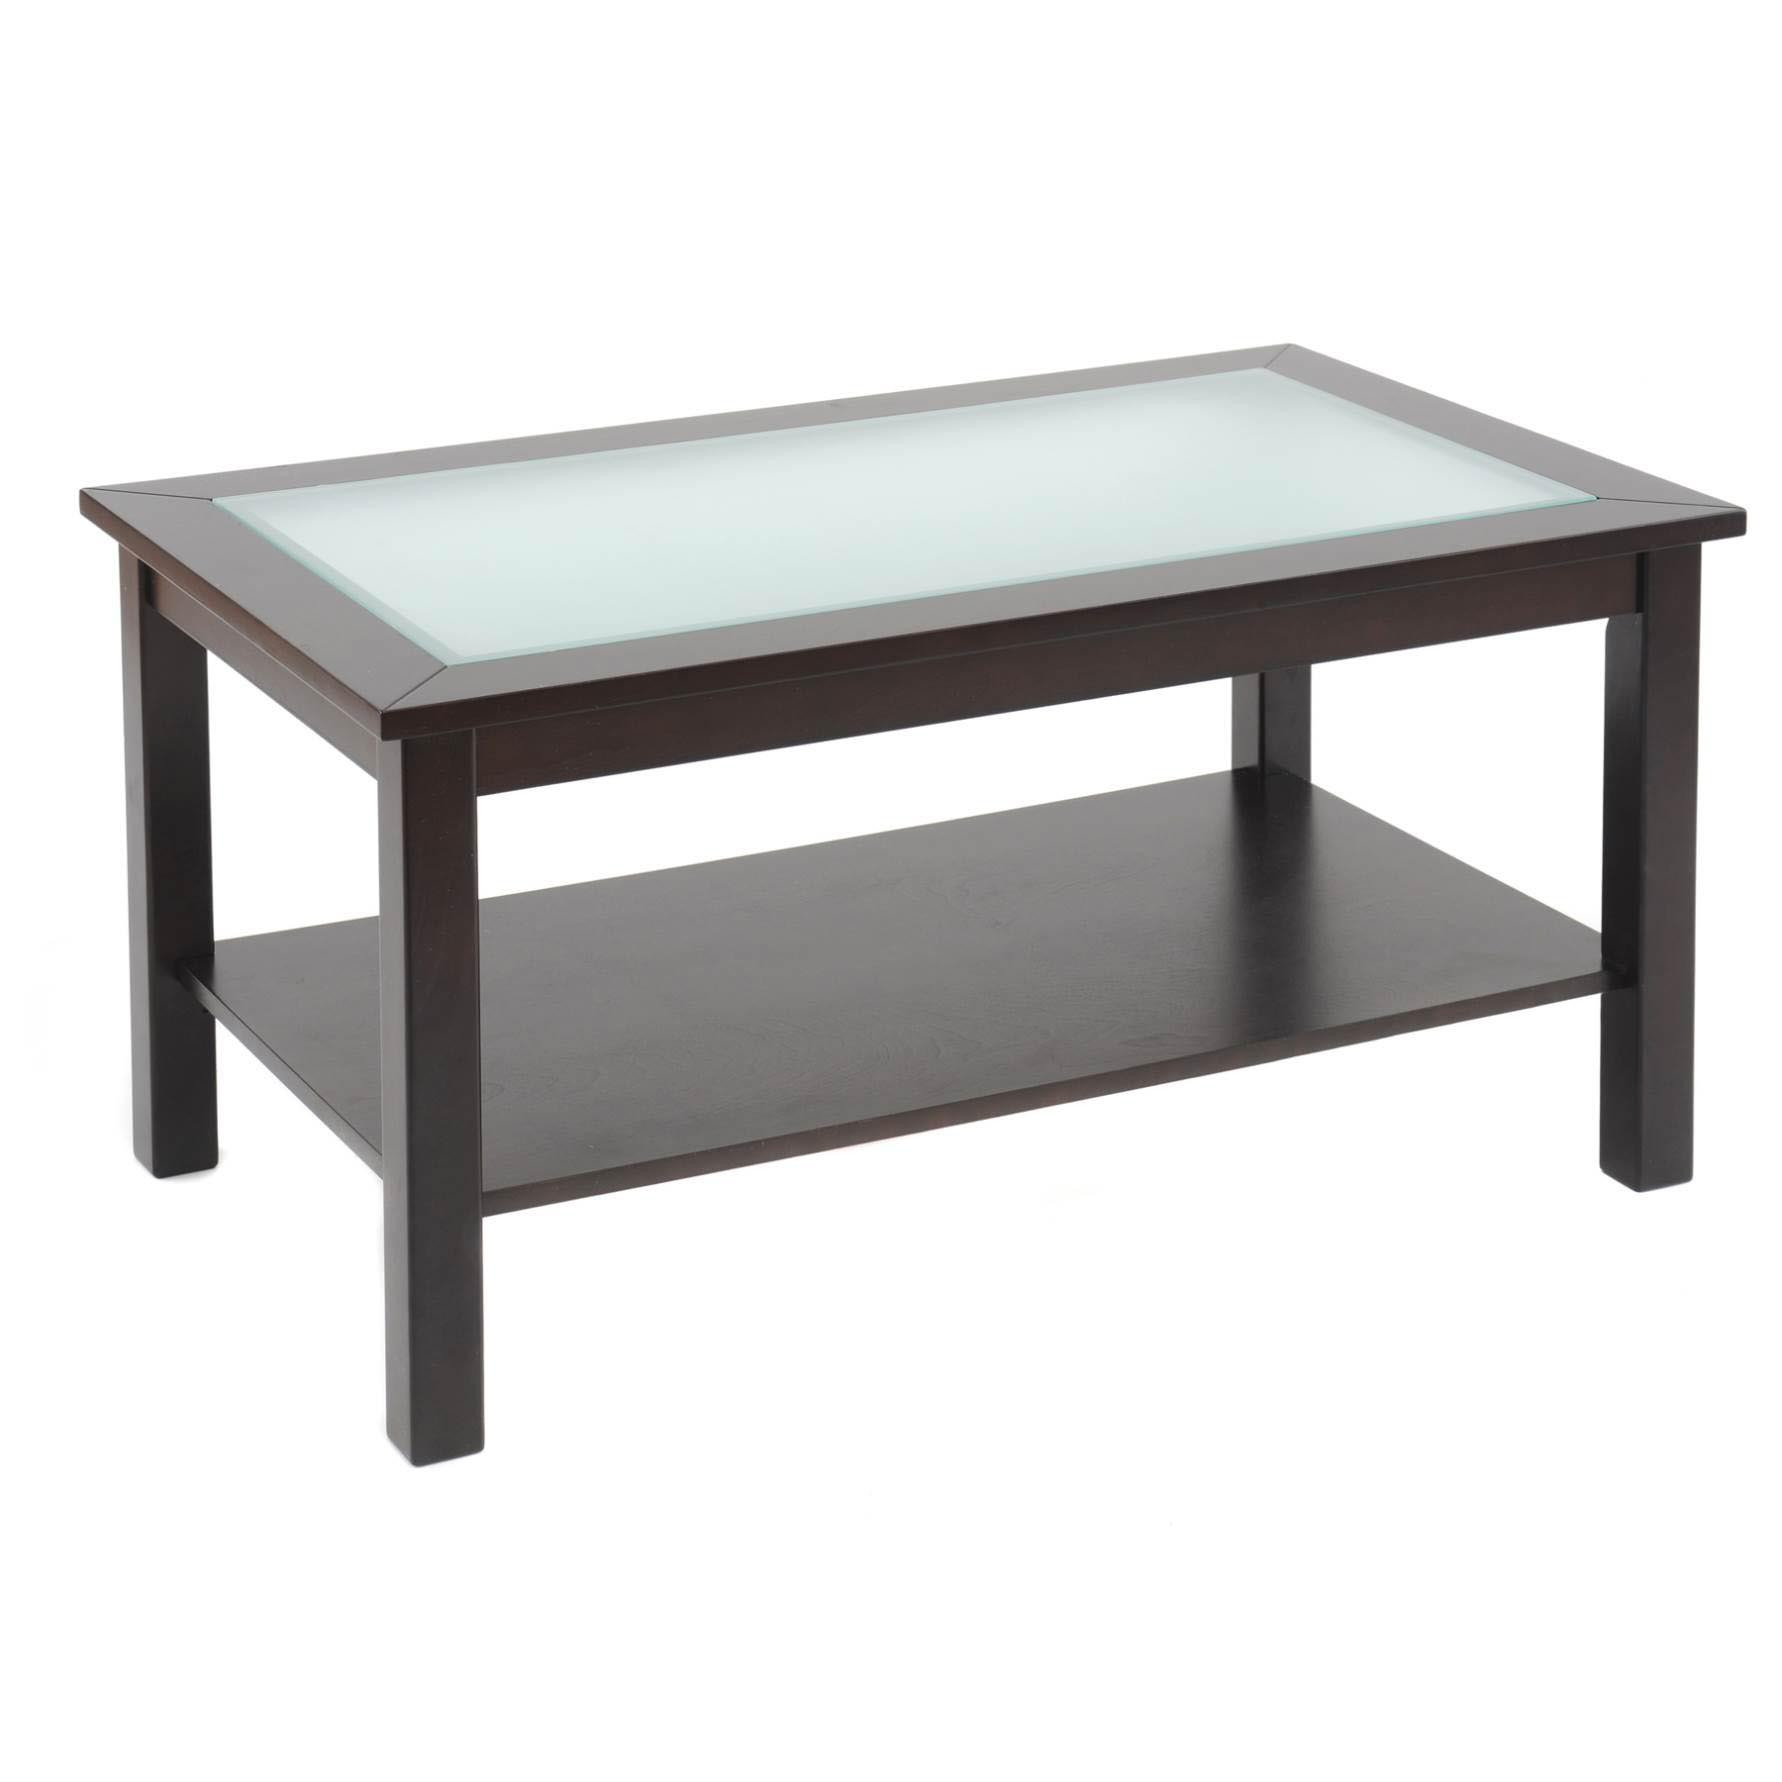 ikea rectangular glass vase of 9 glass top display coffee table ikea pictures coffee tables ideas within glass top display coffee table ikea